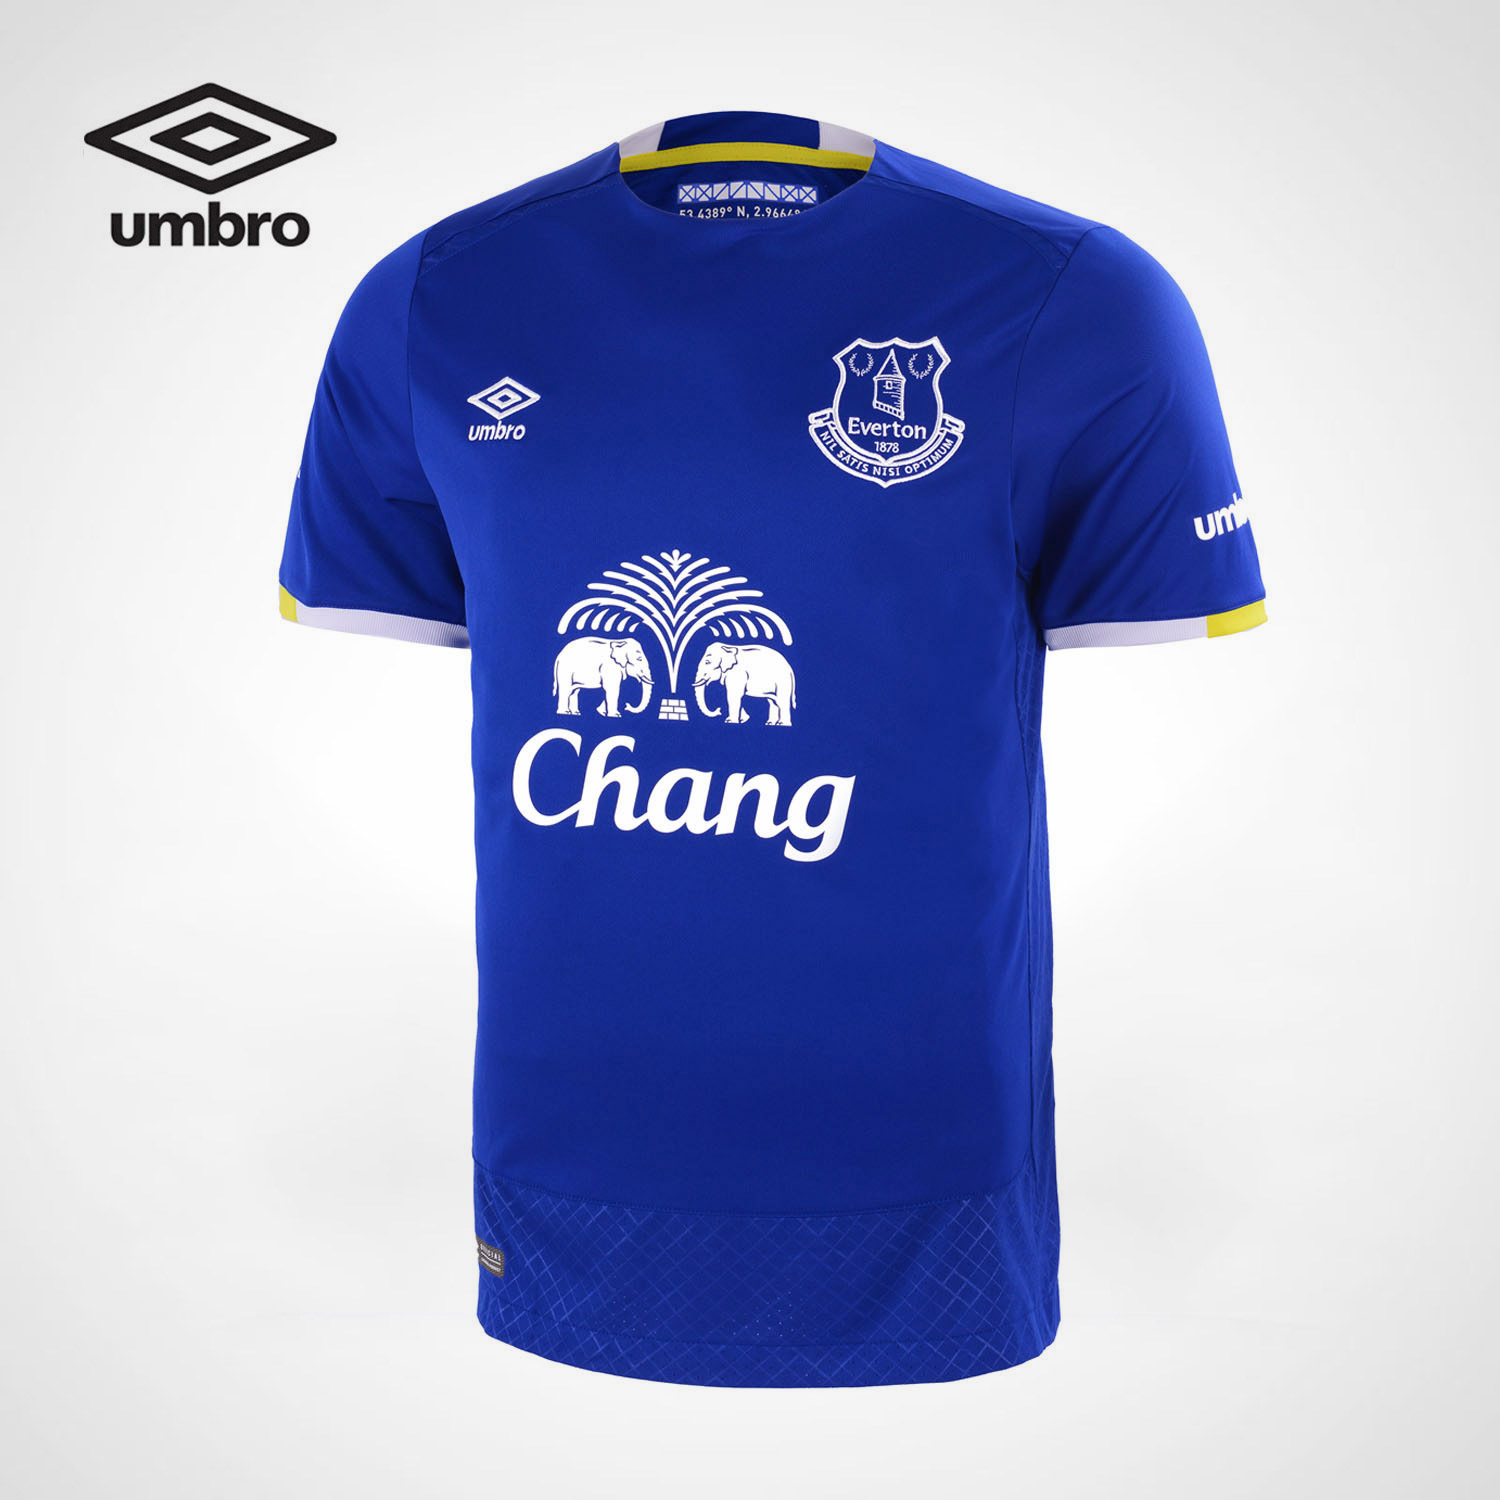 Umbro New Men UFC series men's sports short-sleeved T-shirt Everton Football club training competition clothing shirt UUB63403